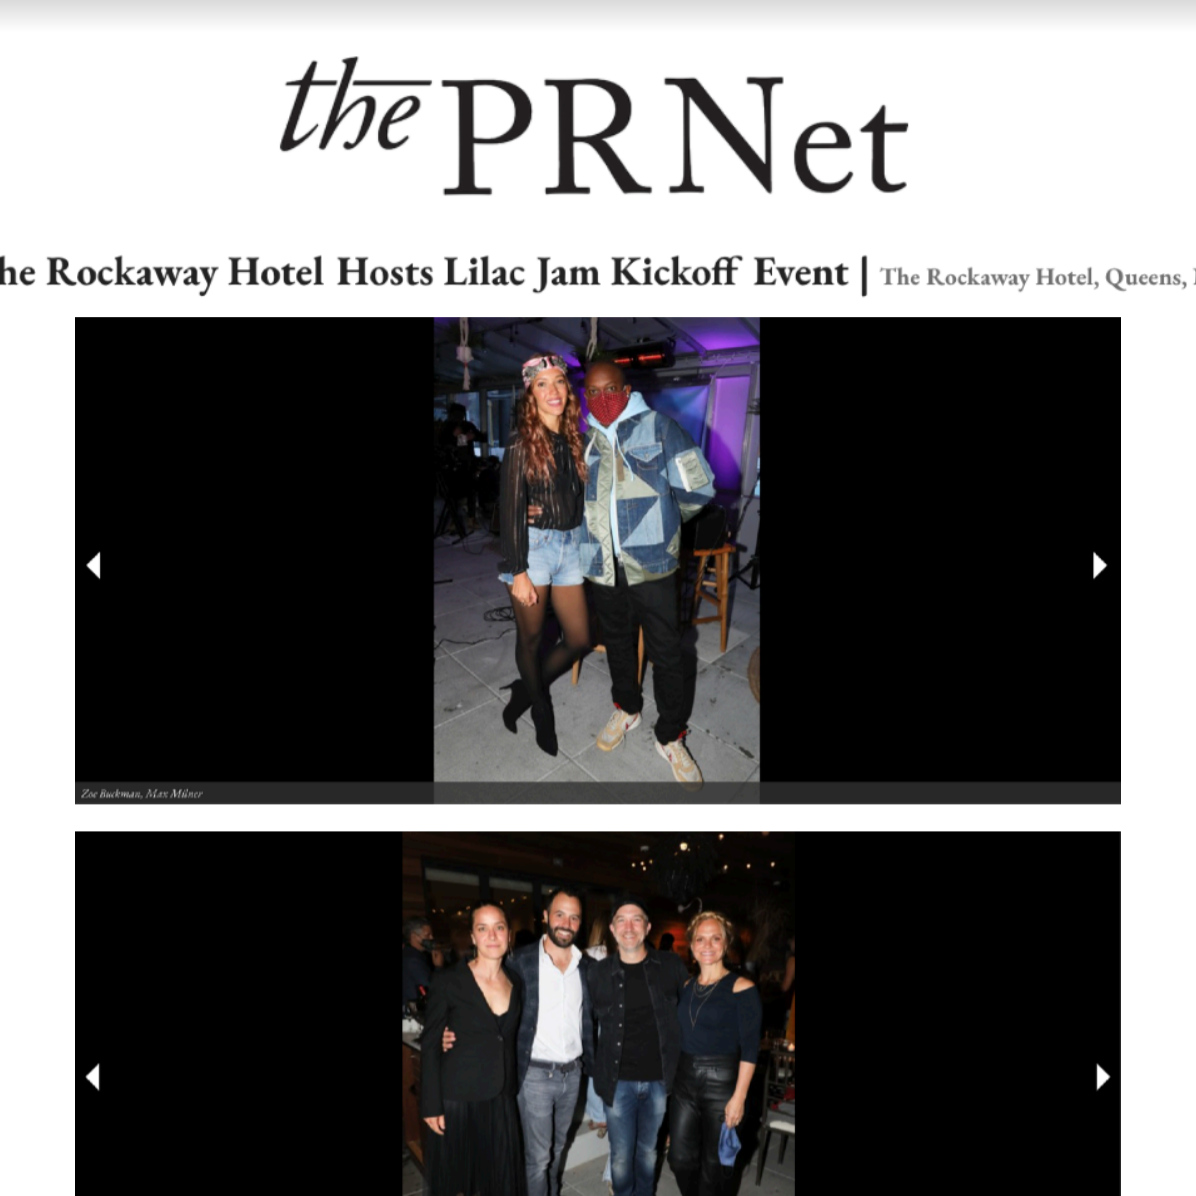 Article from The PRNet at The Rockaway Hotel